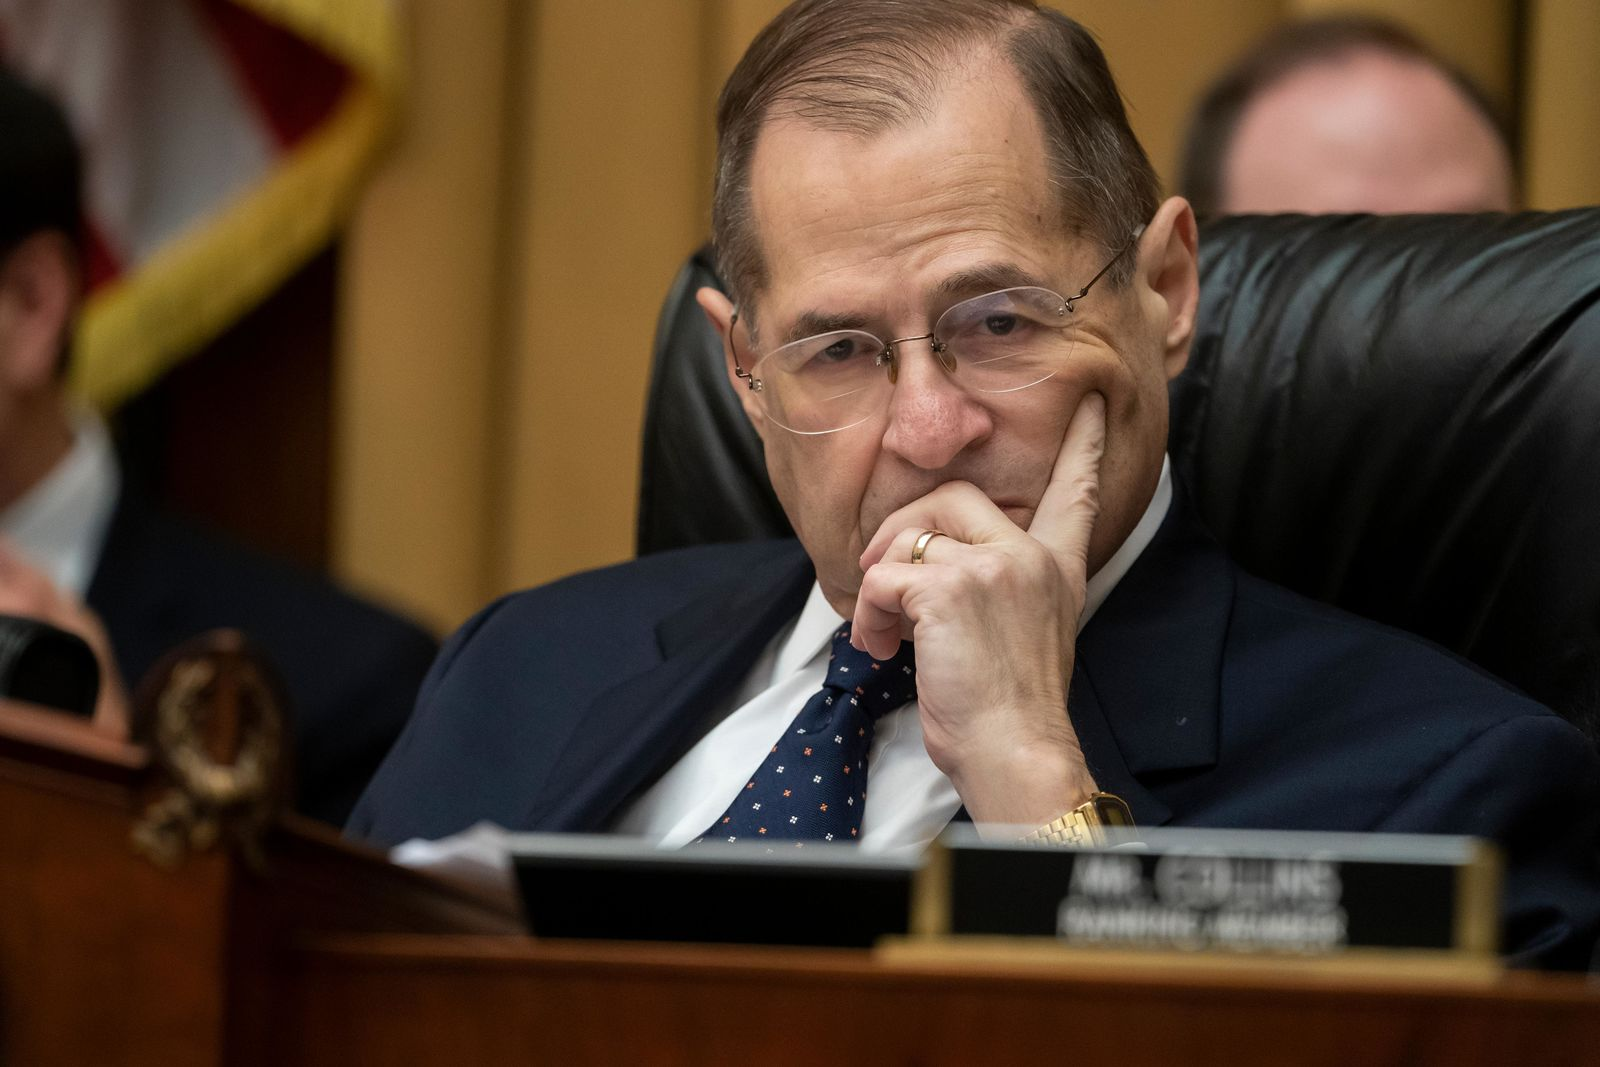 House Judiciary Committee Chair Jerrold Nadler, D-N.Y., moves ahead with a vote to hold Attorney General William Barr in contempt of Congress after last-minute negotiations stalled with the Justice Department over access to the full, unredacted version of special counsel Robert Mueller's report, on Capitol Hill in Washington, Wednesday, May 8, 2019. (AP Photo/J. Scott Applewhite)